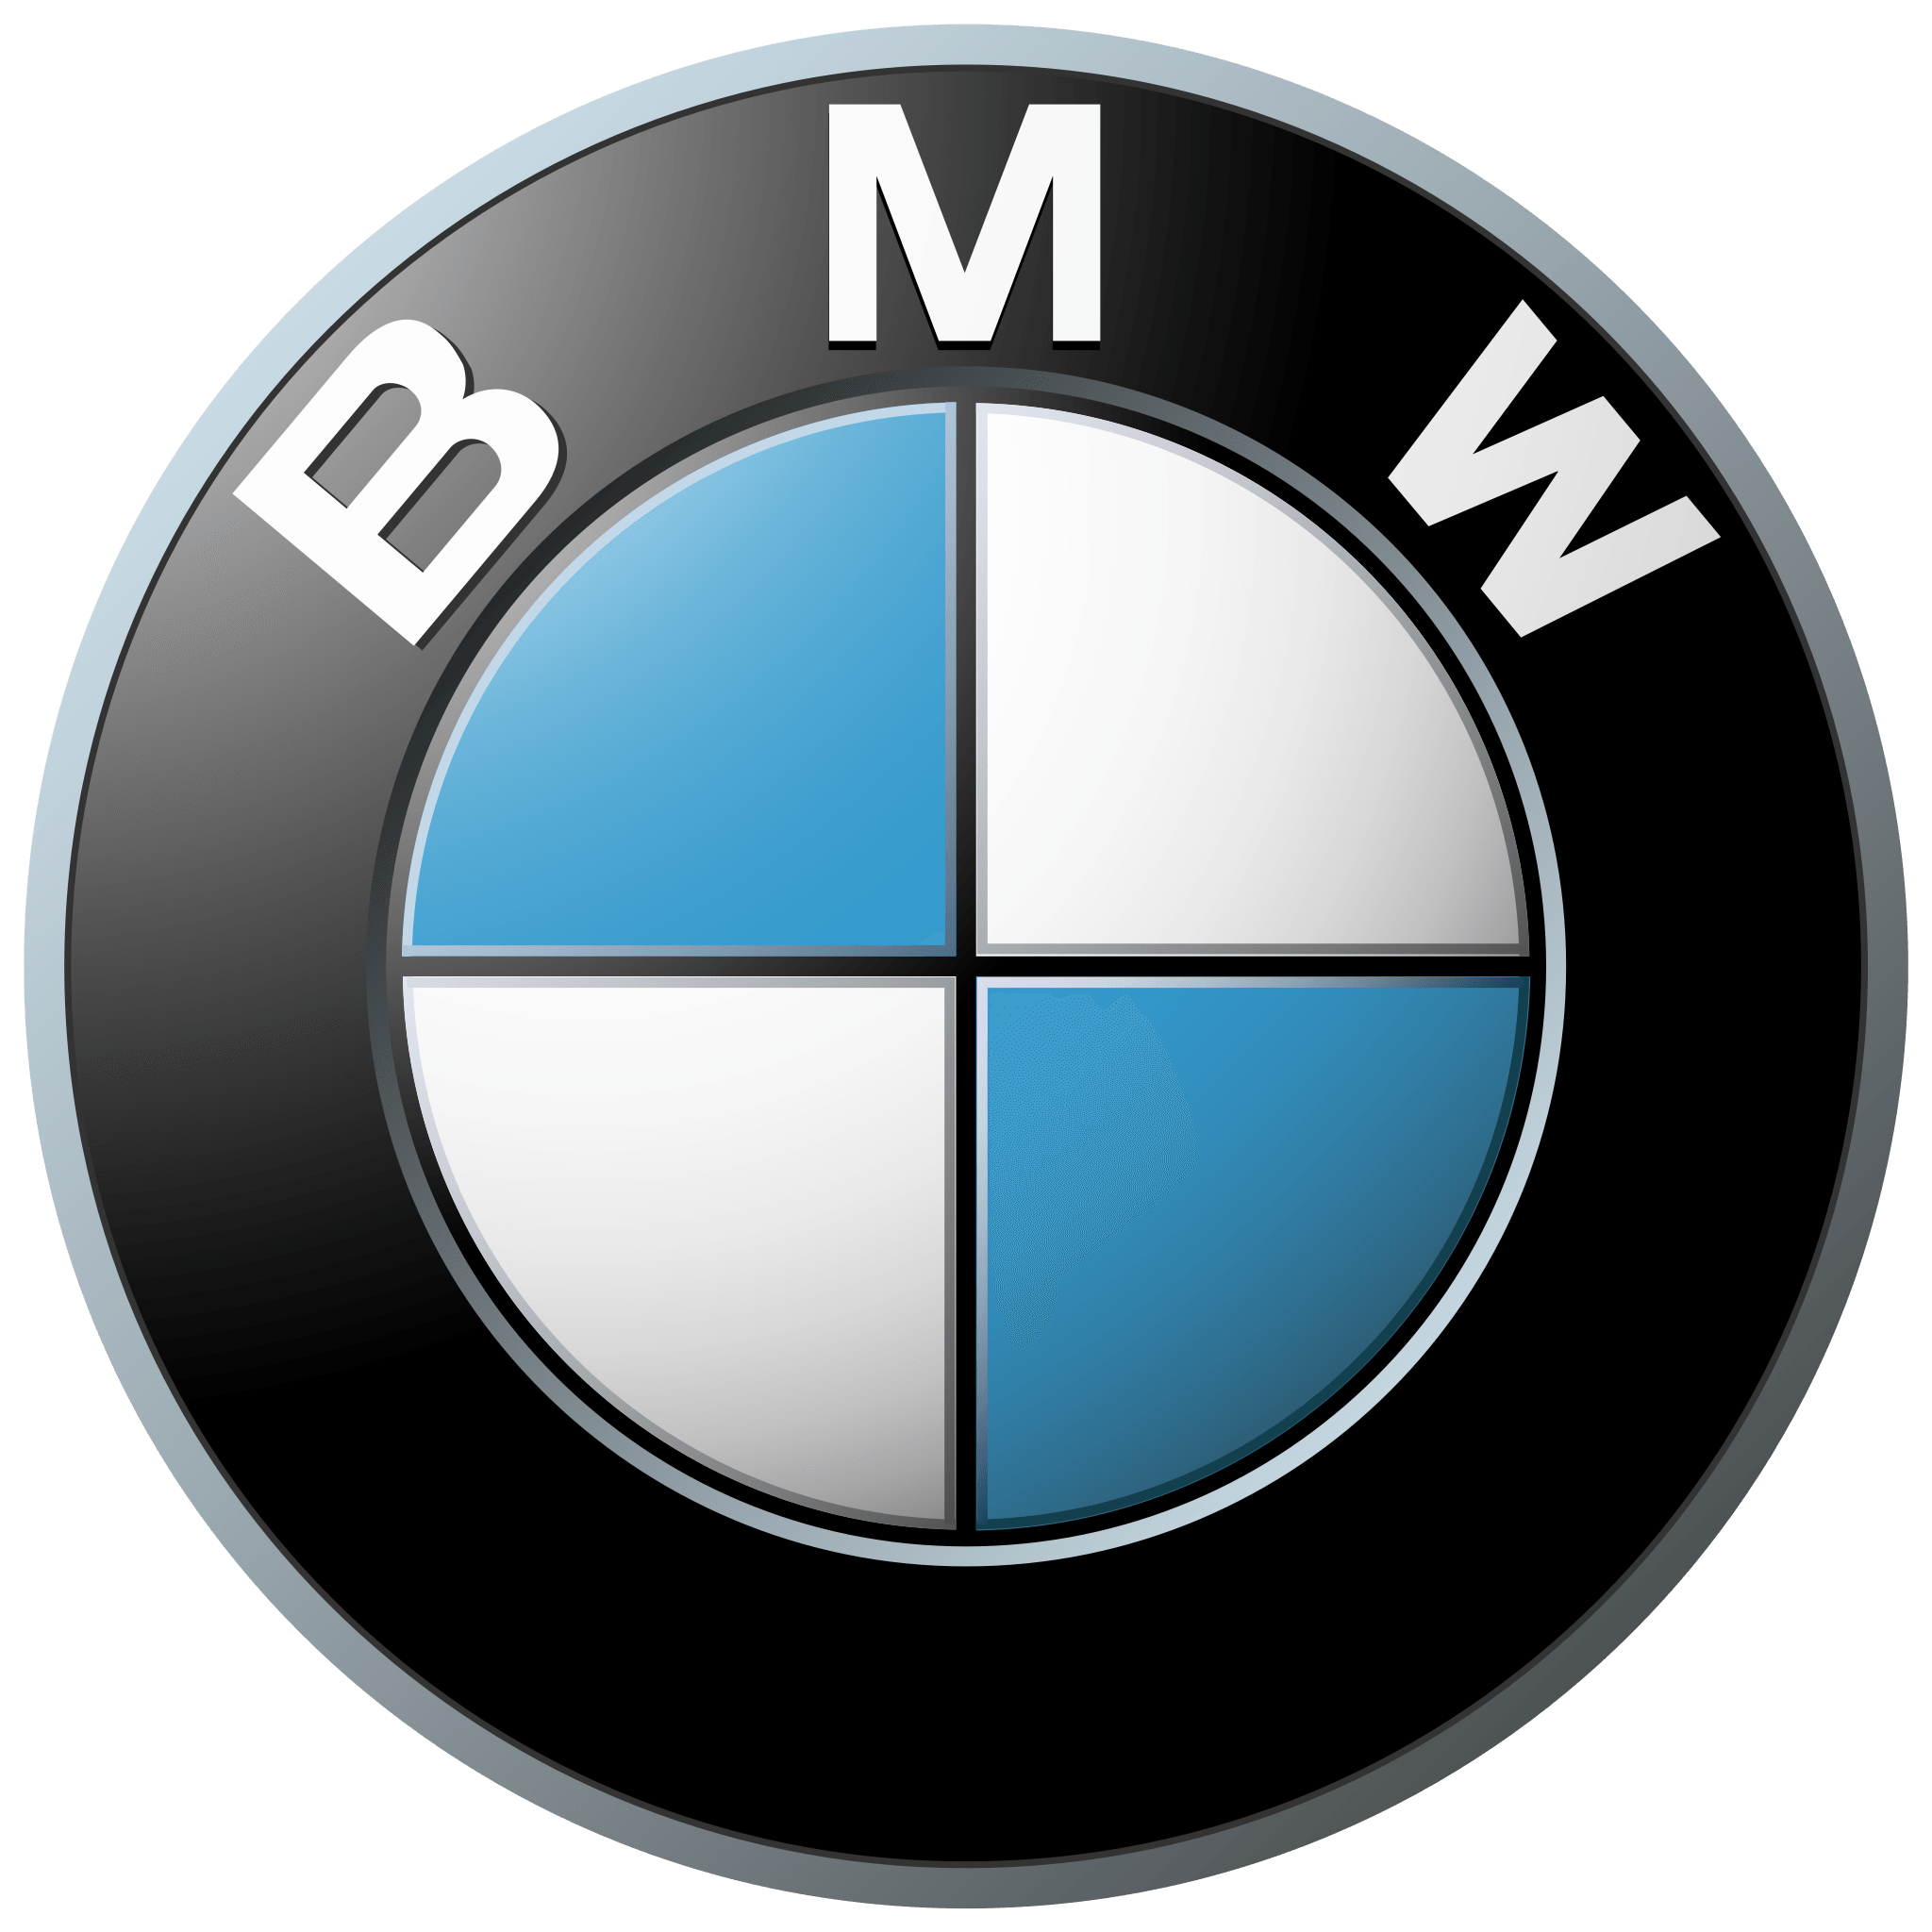 BMW clipart Cliparts Bmw Related clipart